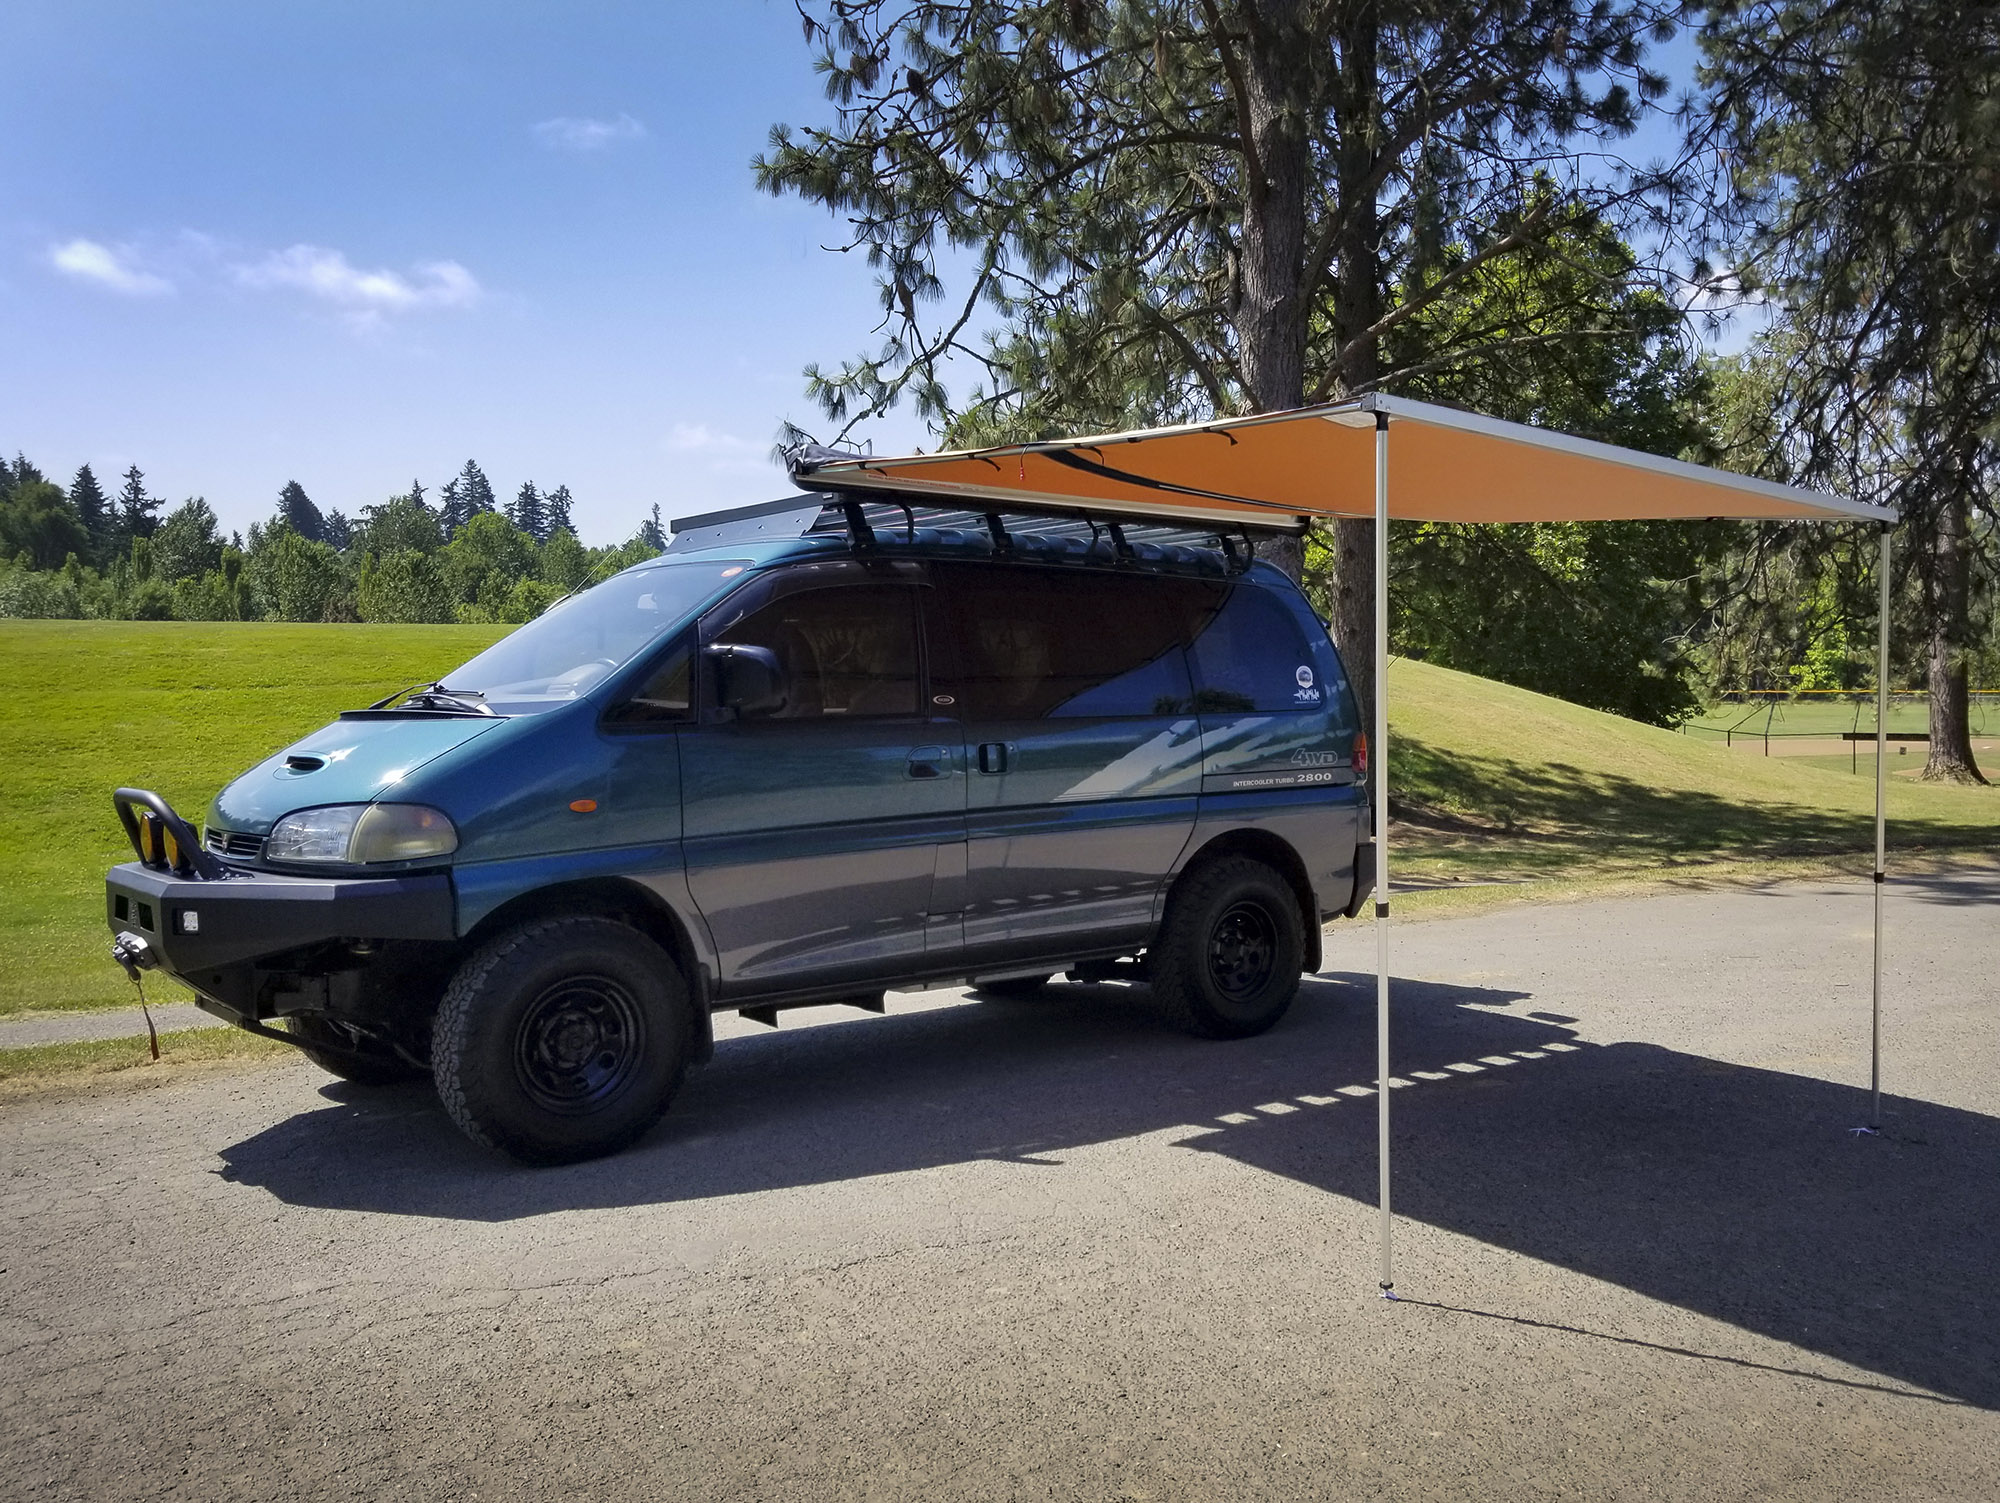 ARB814410 awning on teal Mitsubishi Delica Space Gear van